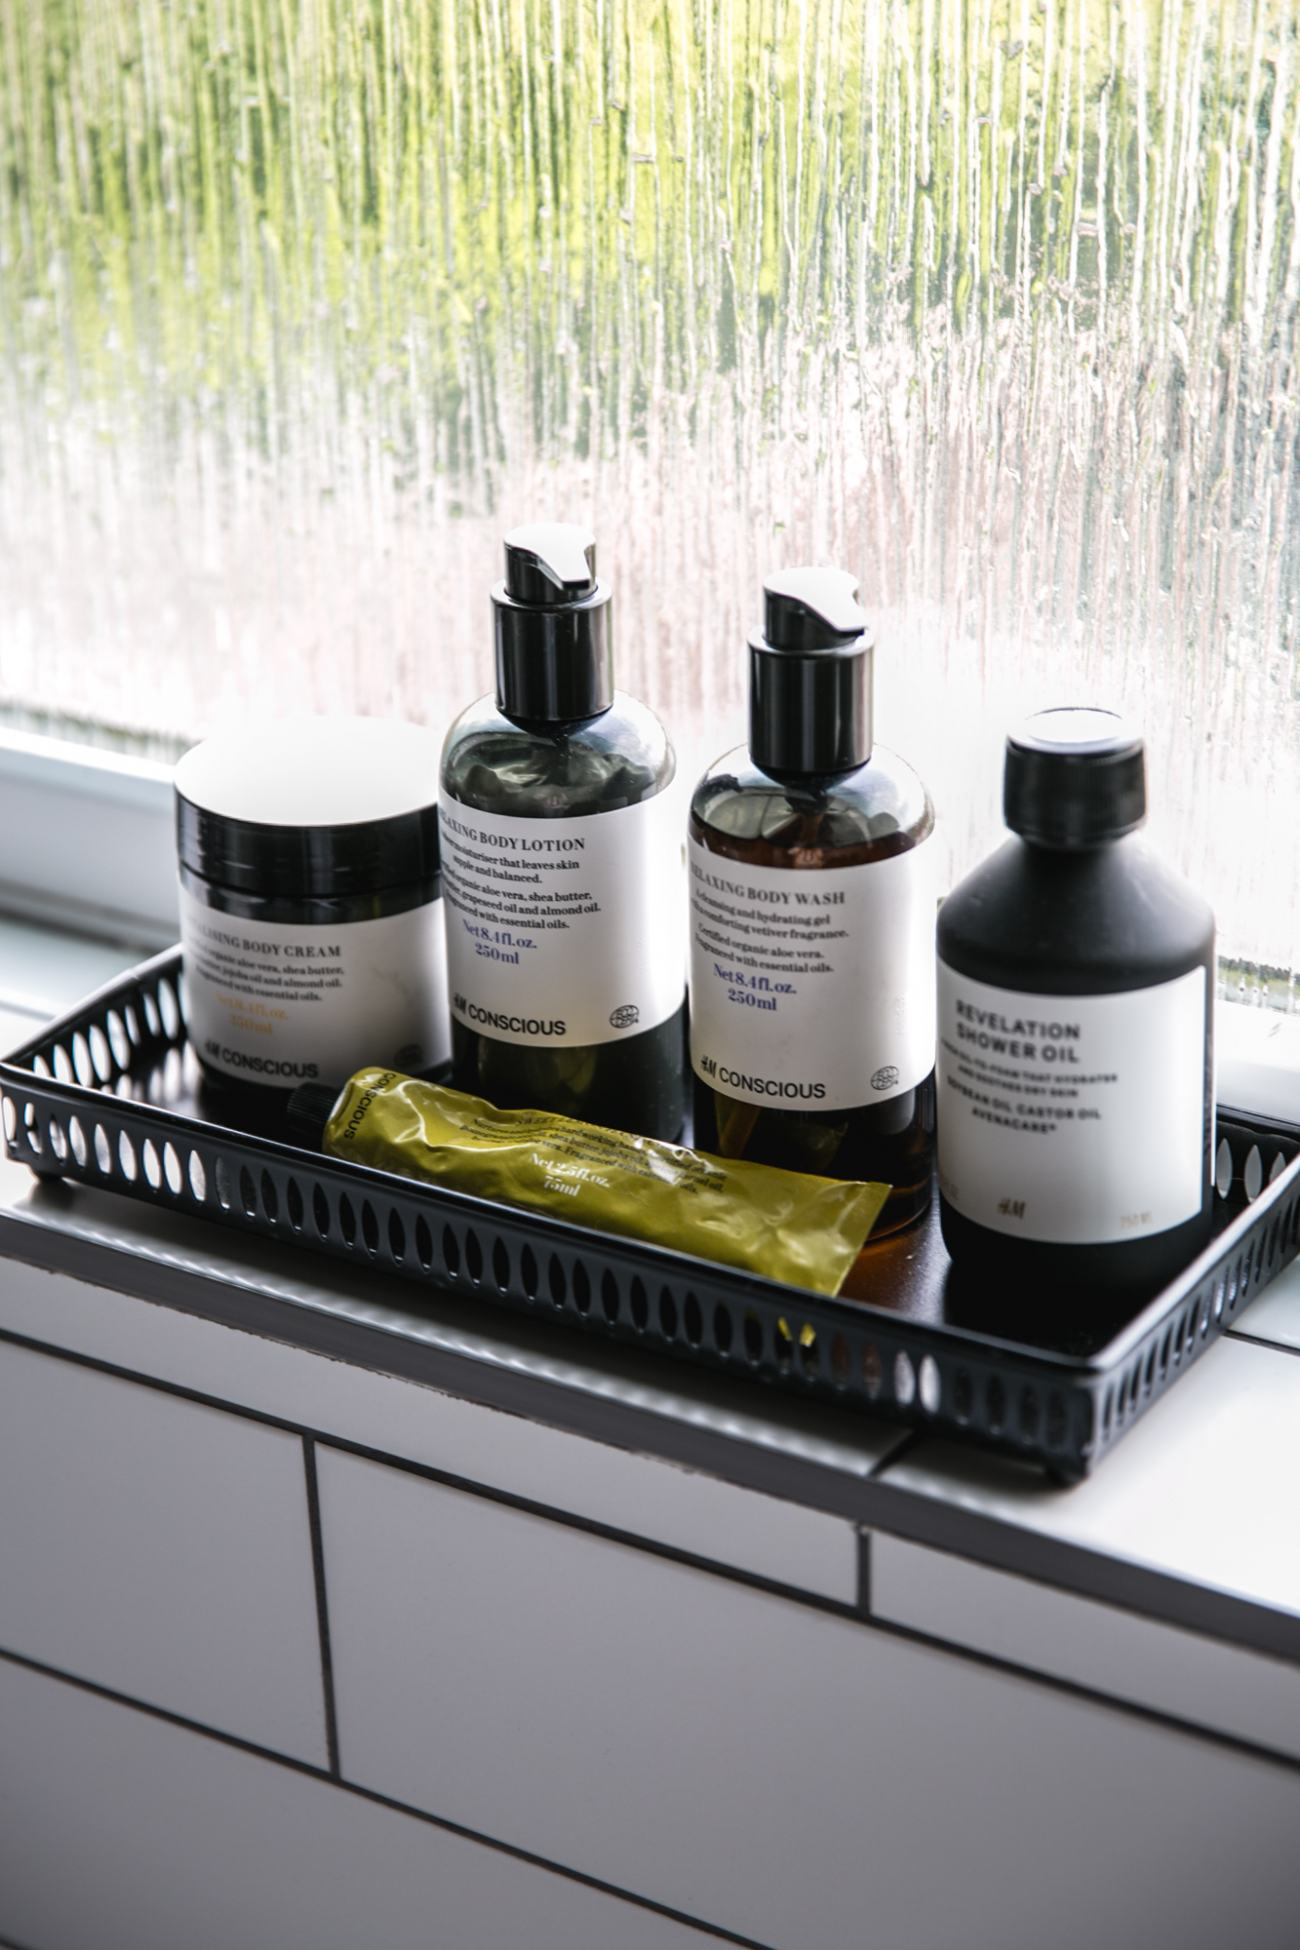 H&M conscious beauty bathroom products